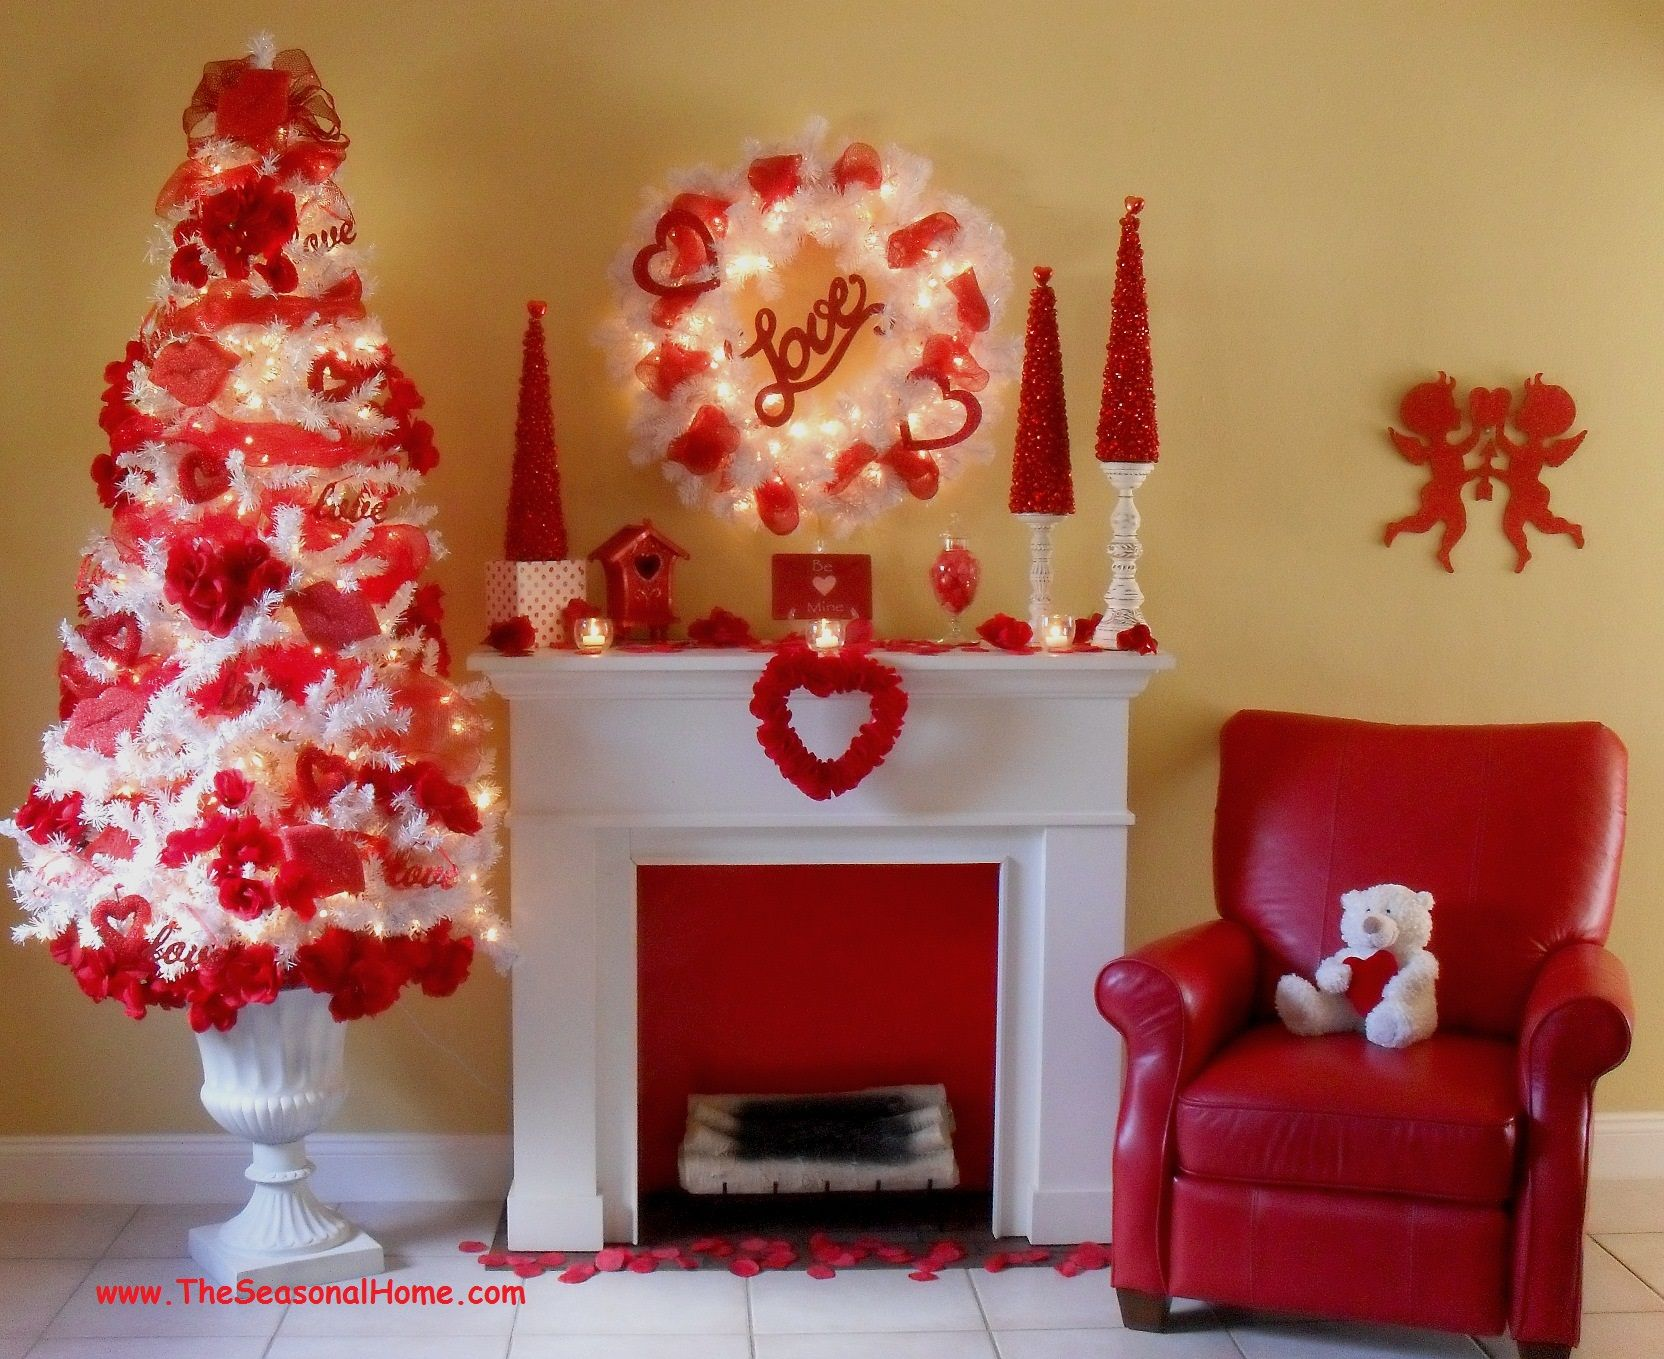 Valentine Decorations For The Home And A Planter Tree Is In That